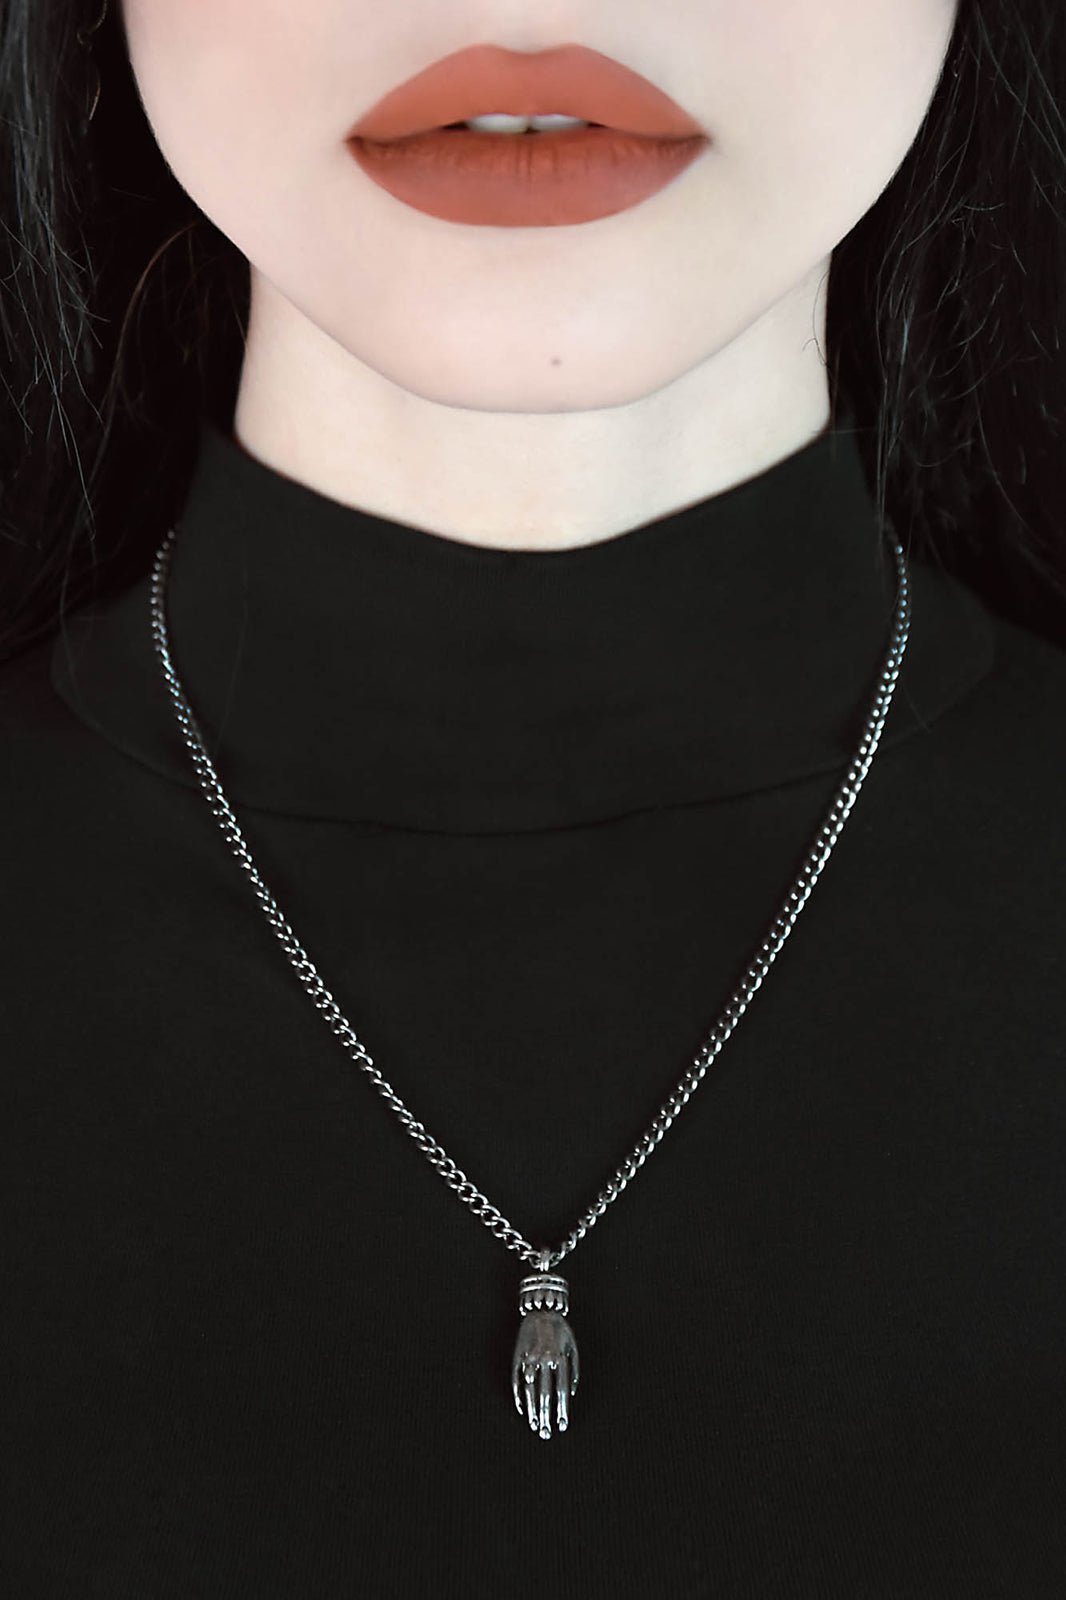 Unseen Hand Necklace